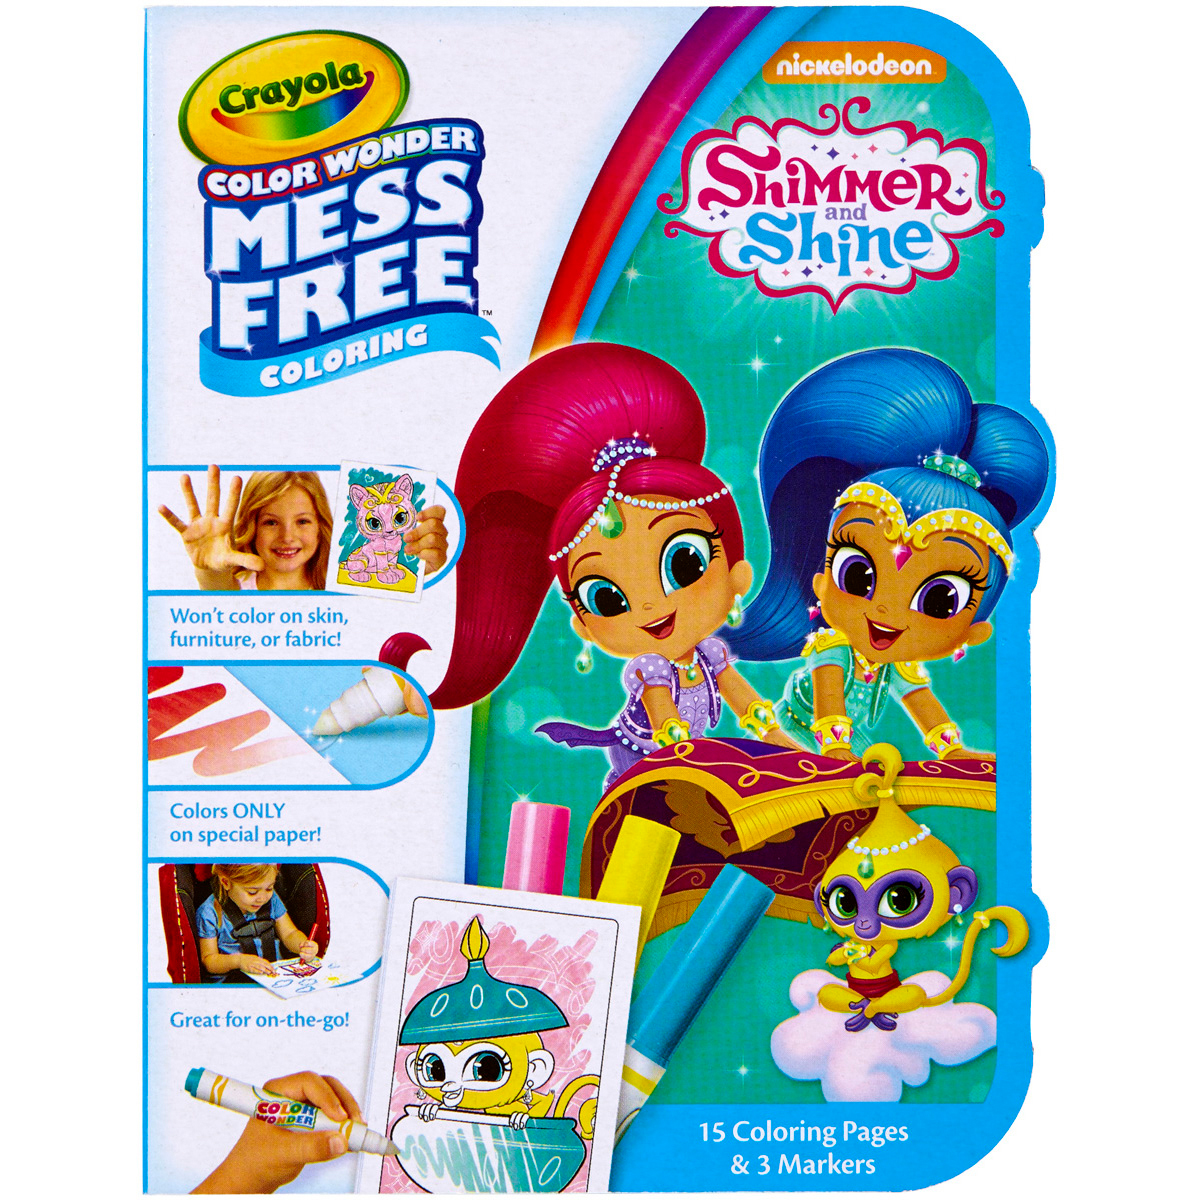 Crayola Color Wonder On The Go Coloring Kit Shimmer & Shine by Crayola